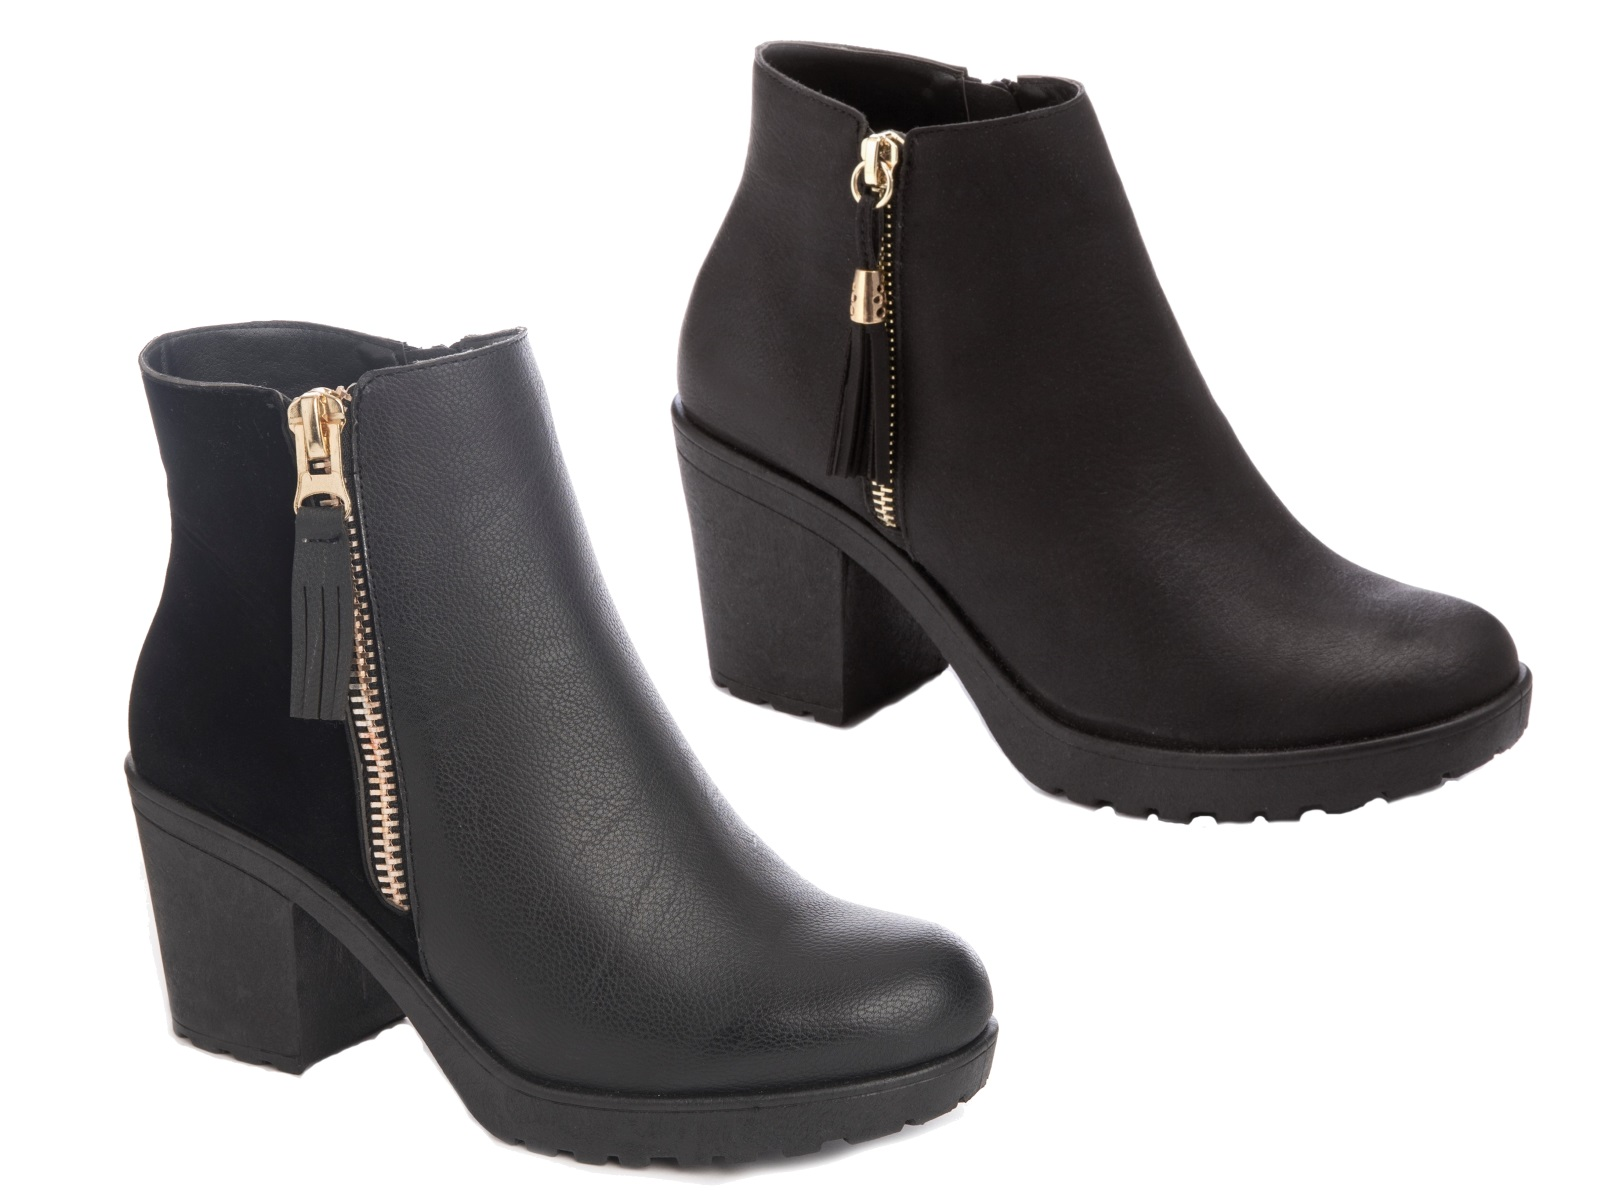 Find great deals on eBay for chunky heel platform ankle boots. Shop with confidence.